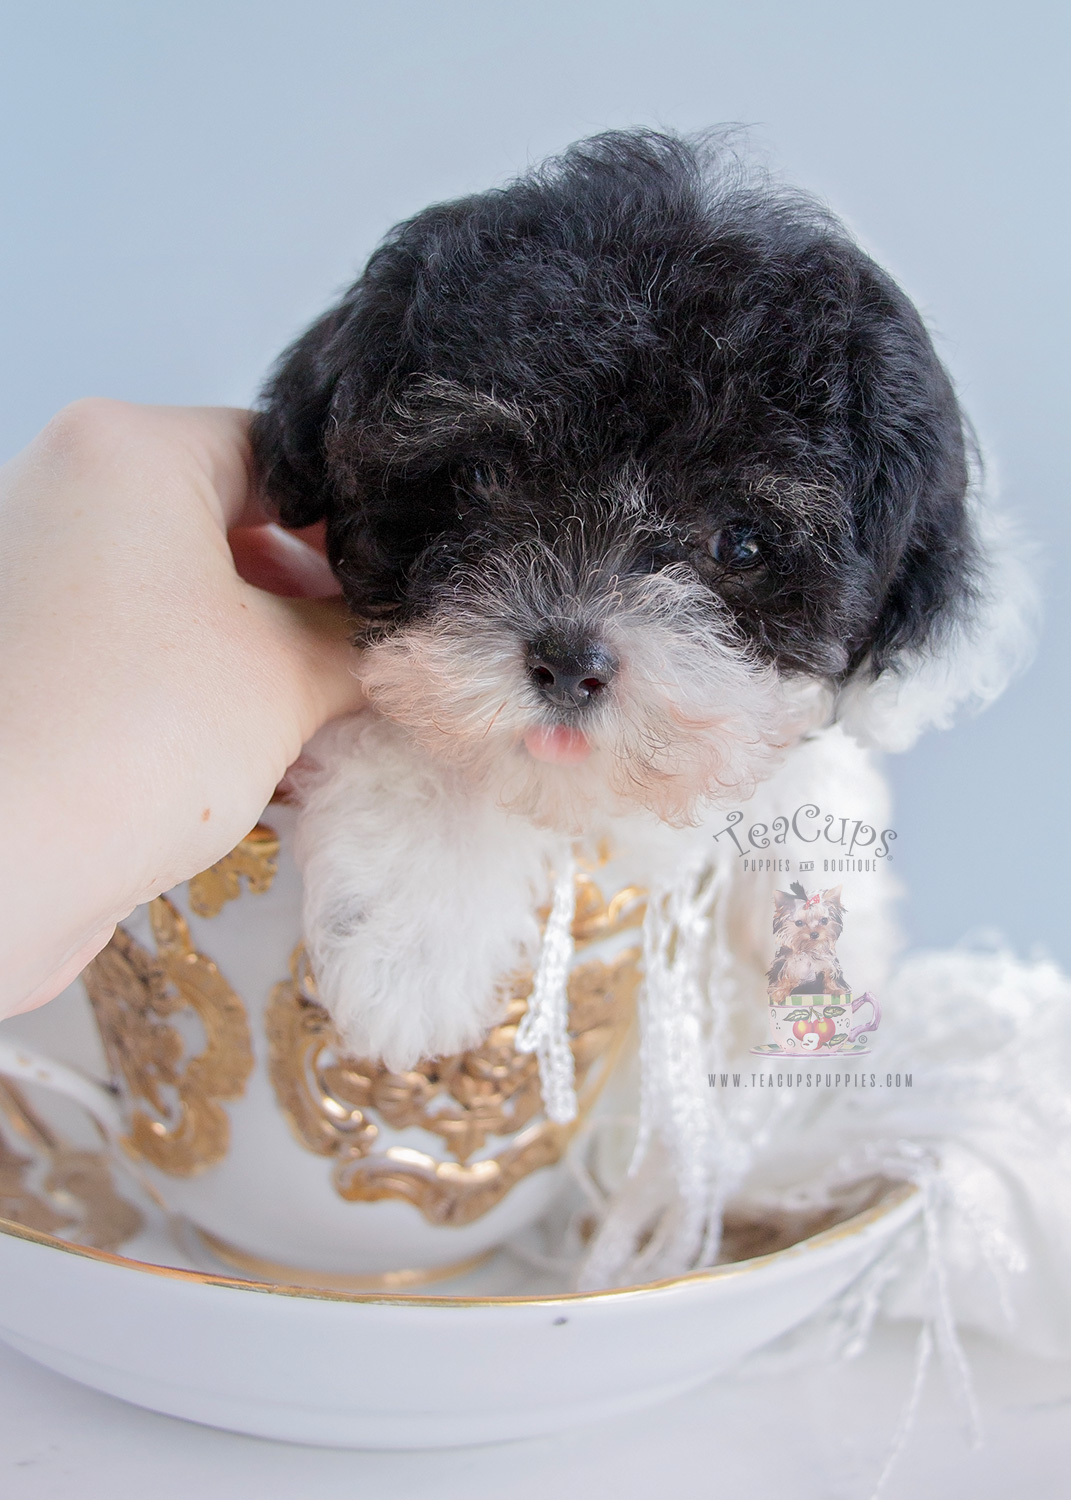 #242 Teacup Puppies Toy Poodle For Sale